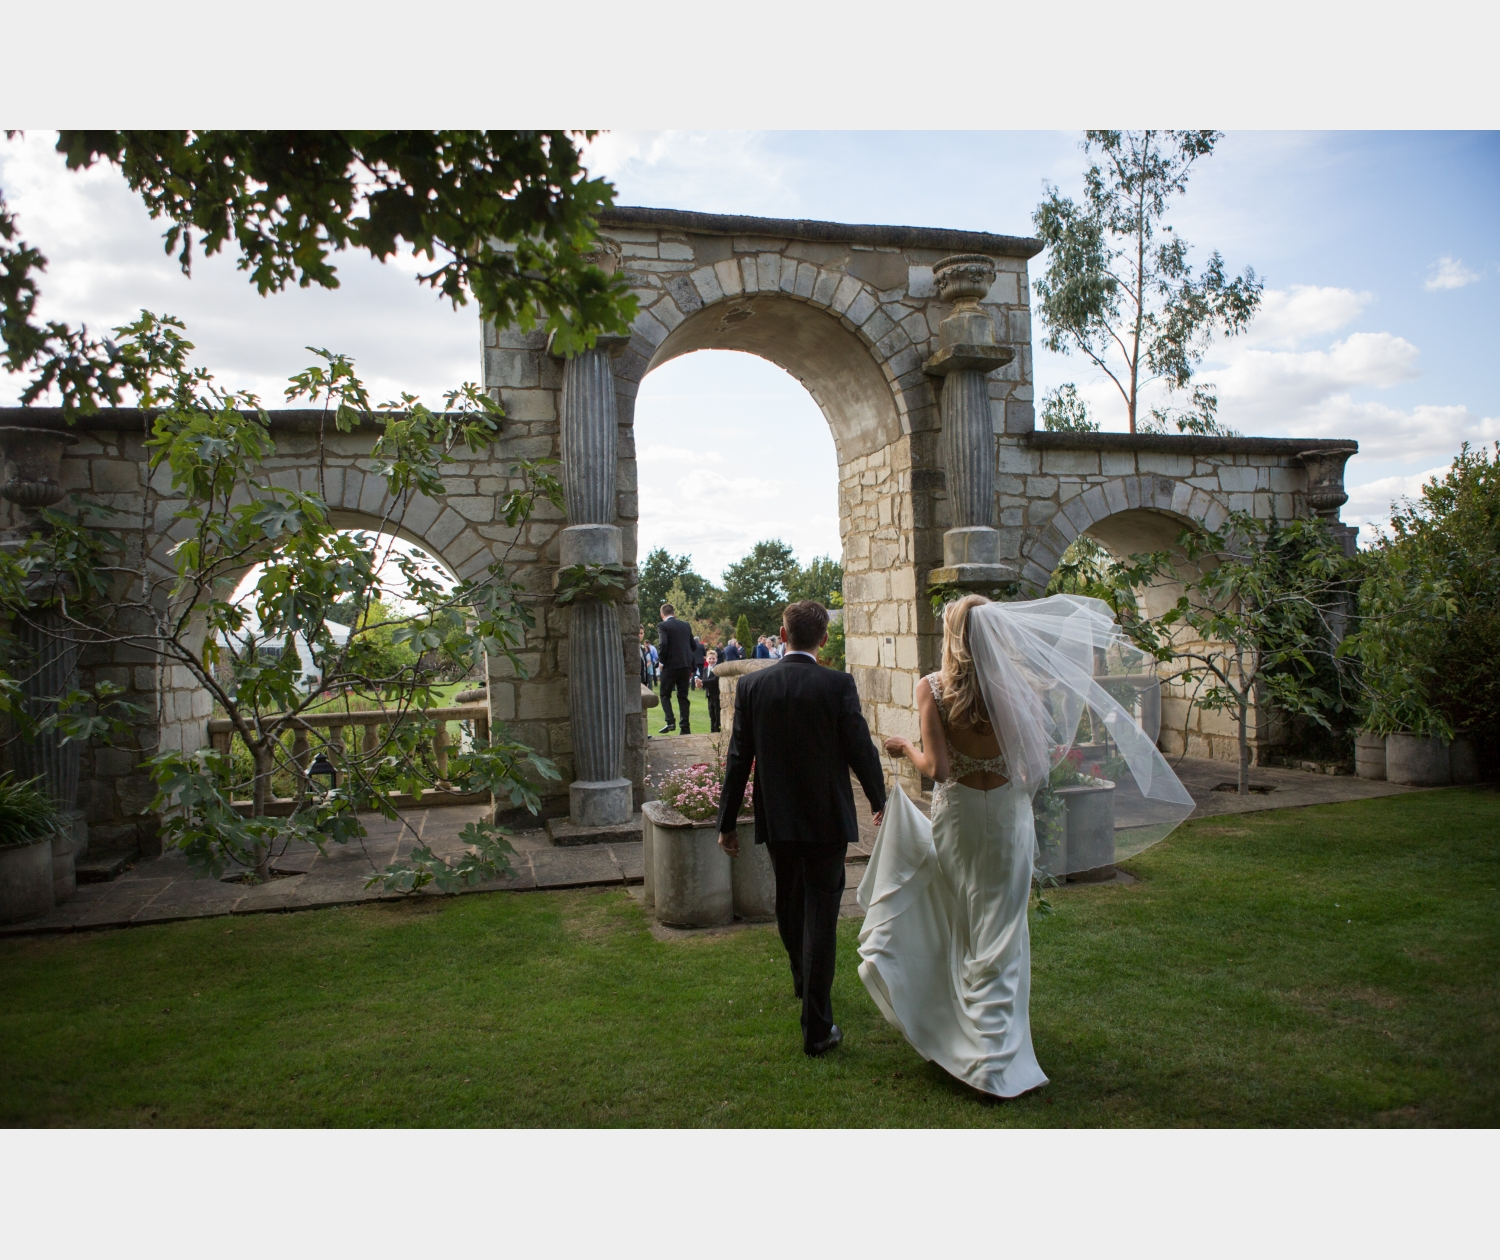 Flaxbourne Gardens wedding show & open day